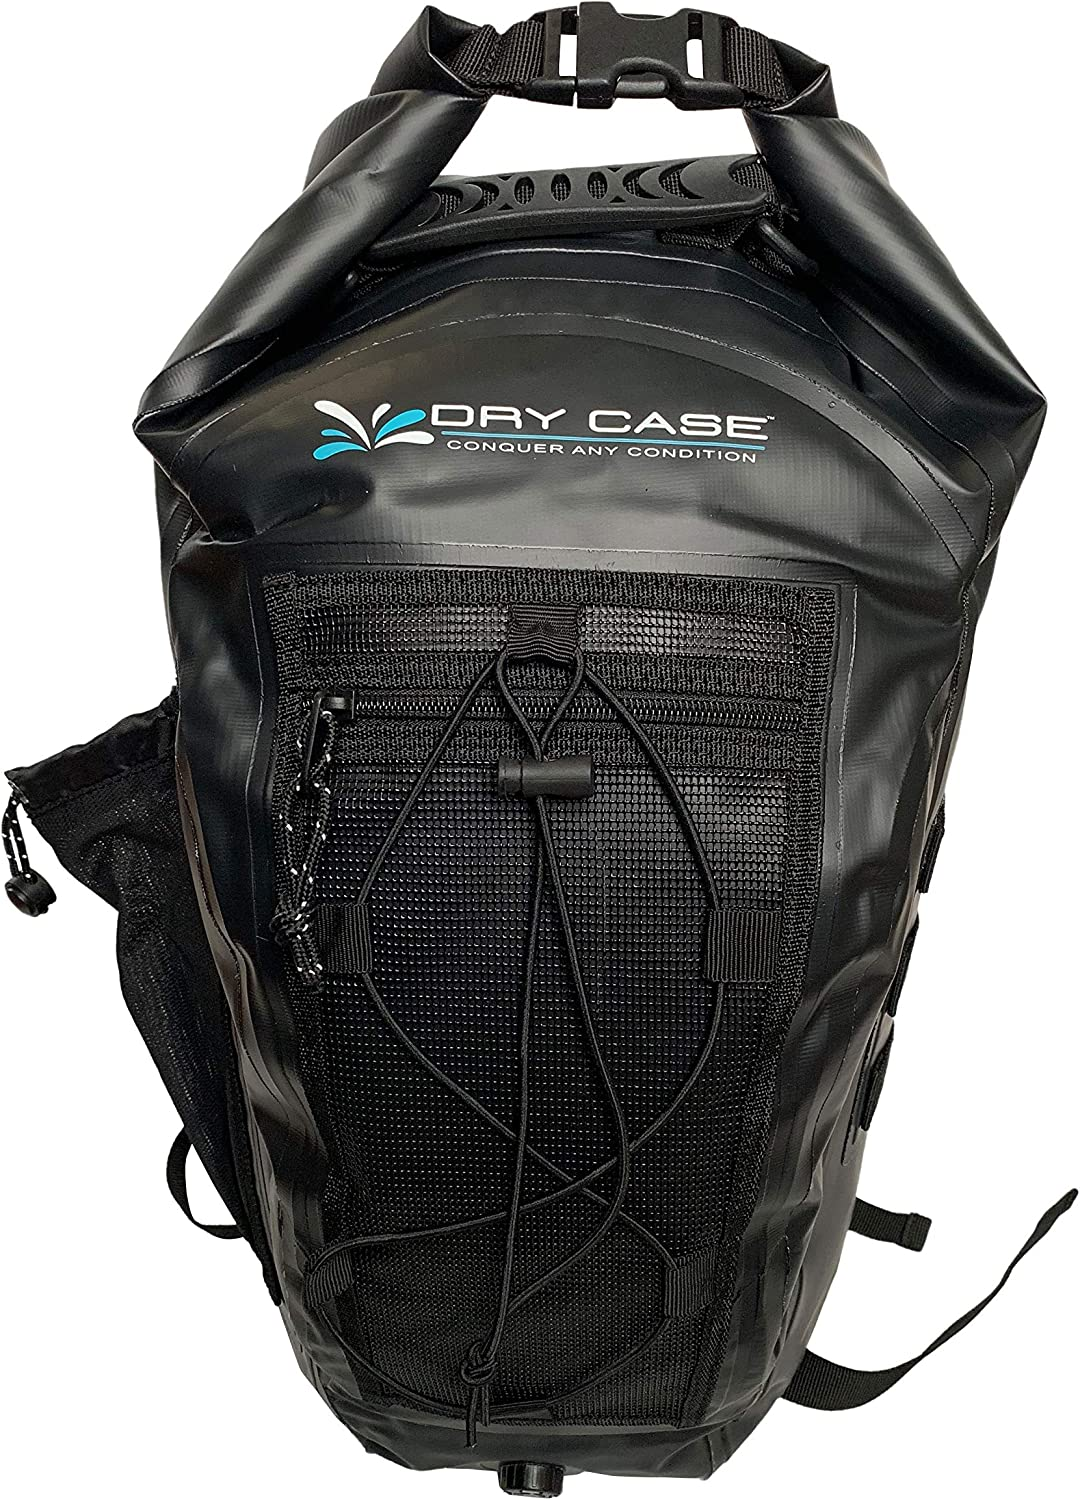 DRYCASE Basin Waterproof Sport Backpack-20 Liter